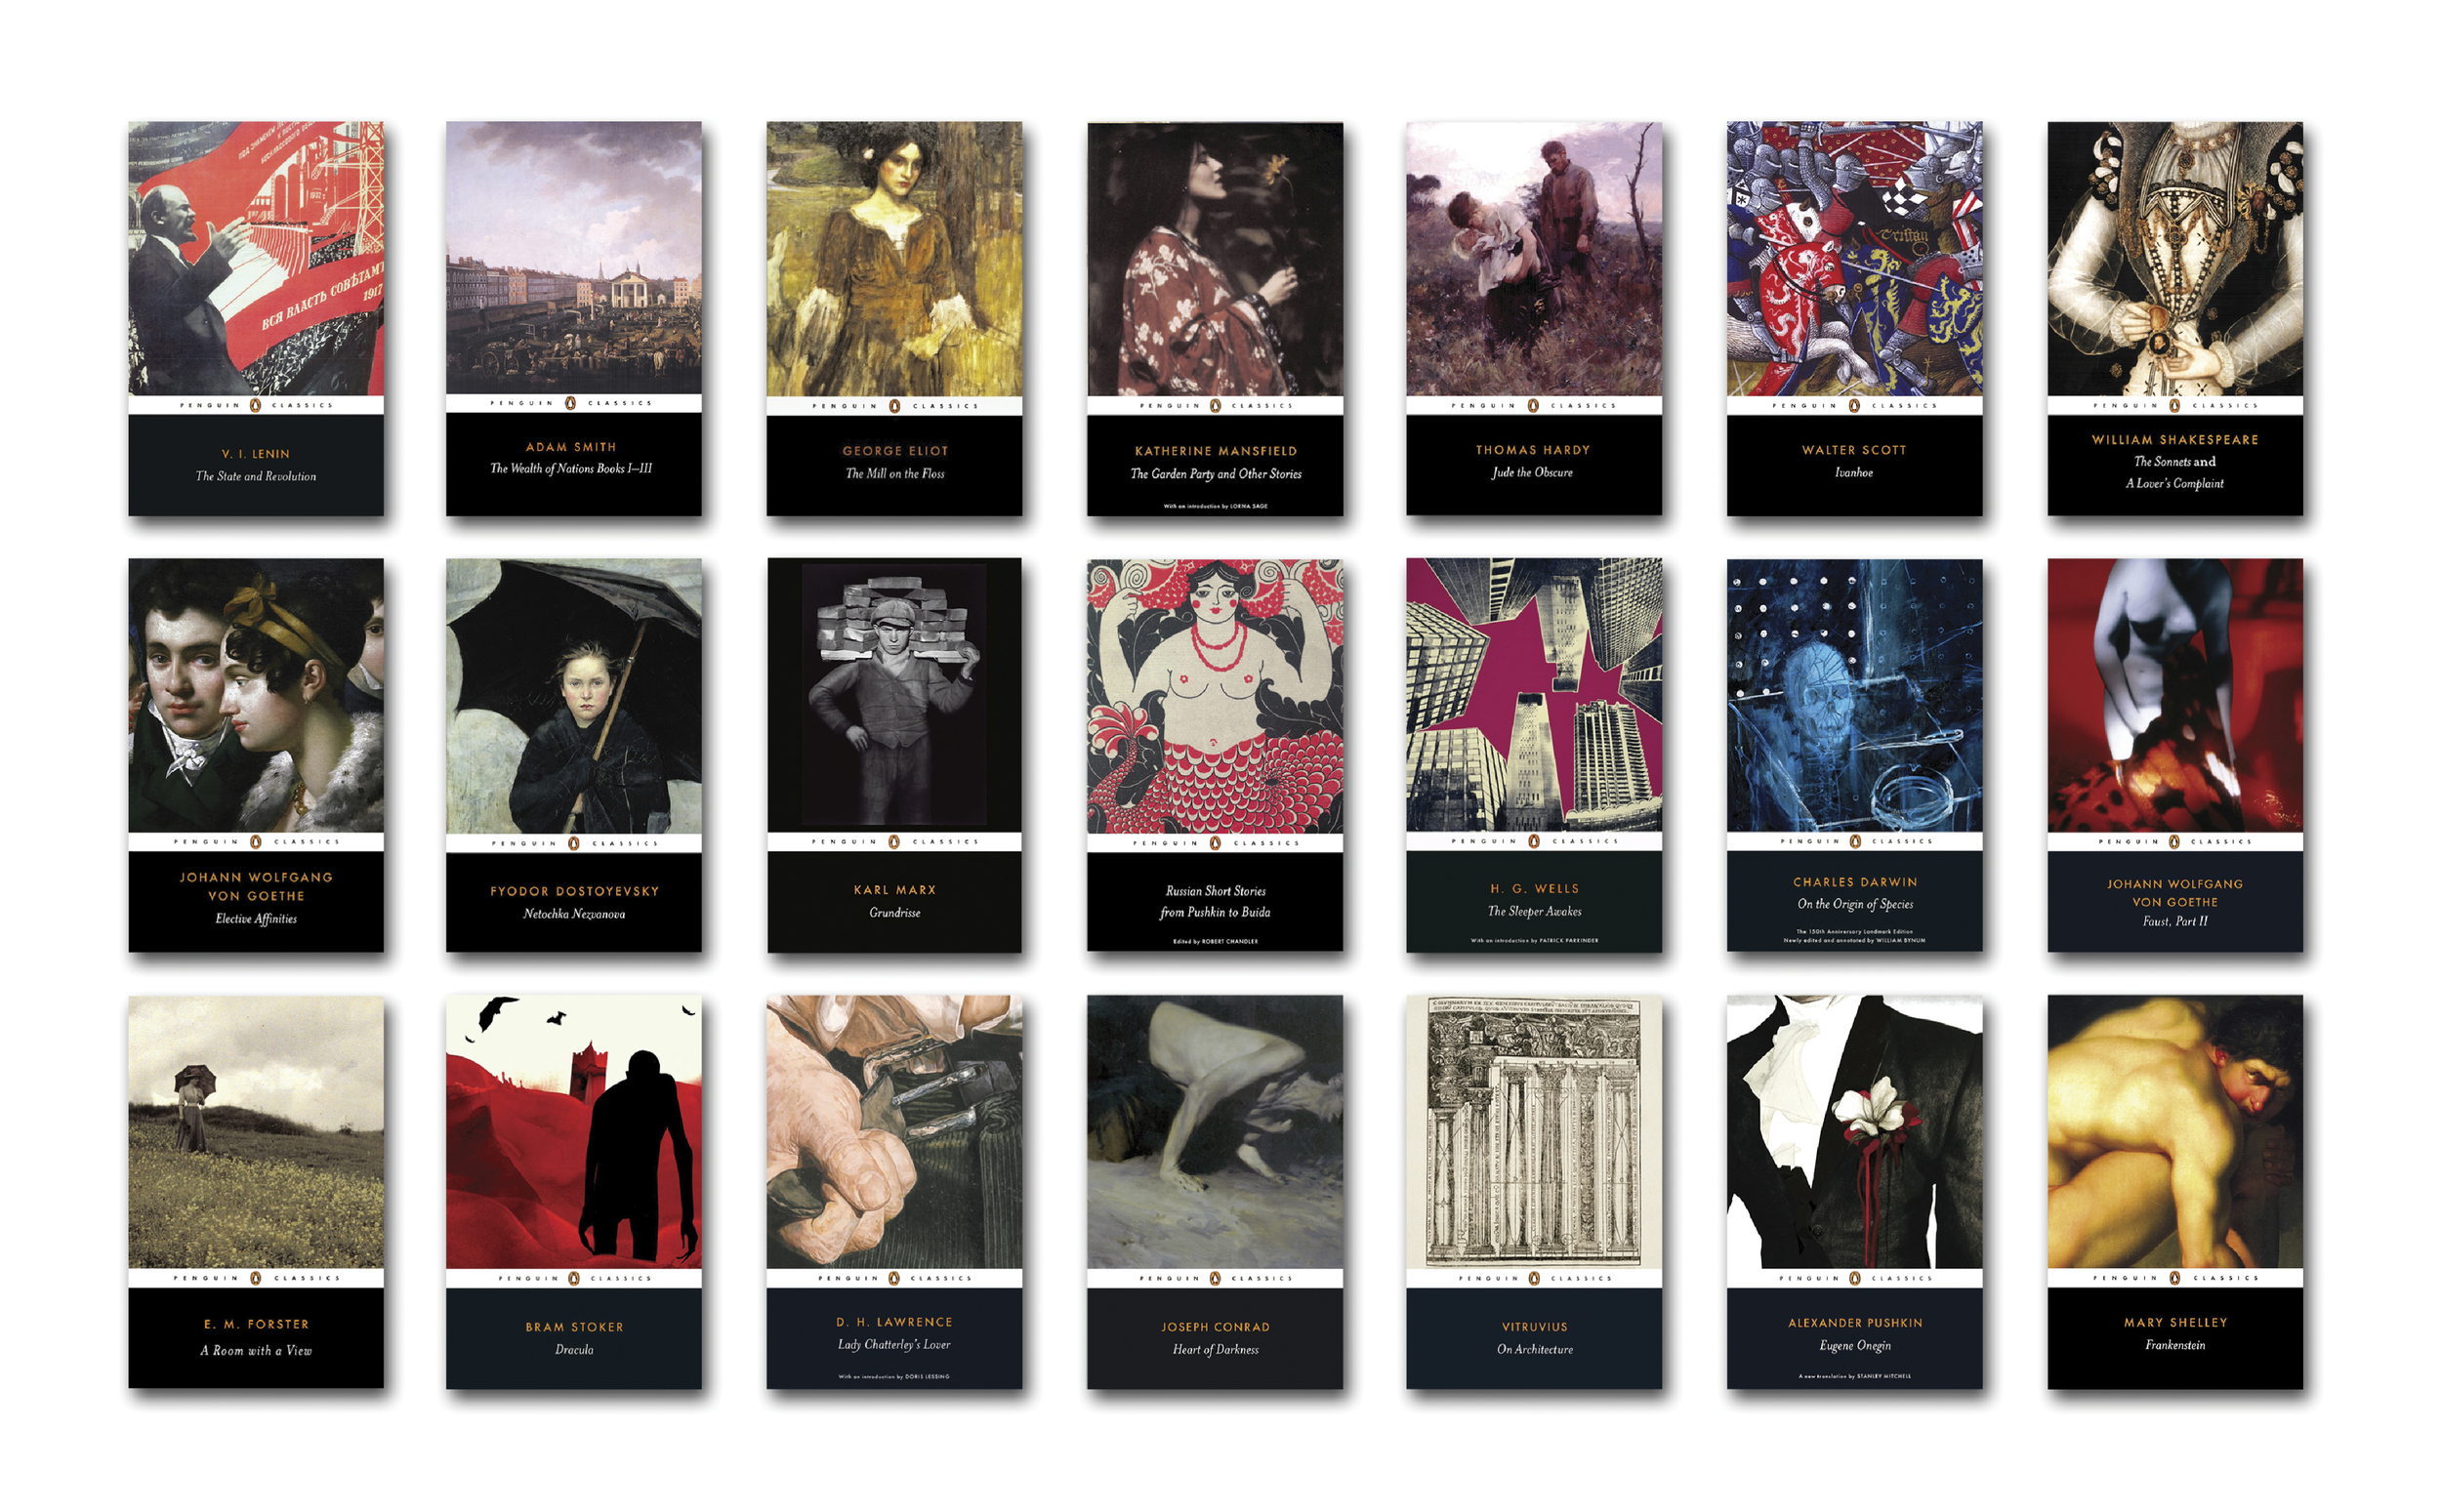 Penguin Classics 'Black' series template  - Art Direction:  Jim Stoddart Design & concept: Angus Hyland/Pentagram Typography: Paul Buckley Picture Research: Samantha Johnson Isabelle De Cat Artworking: Arran Elvidge